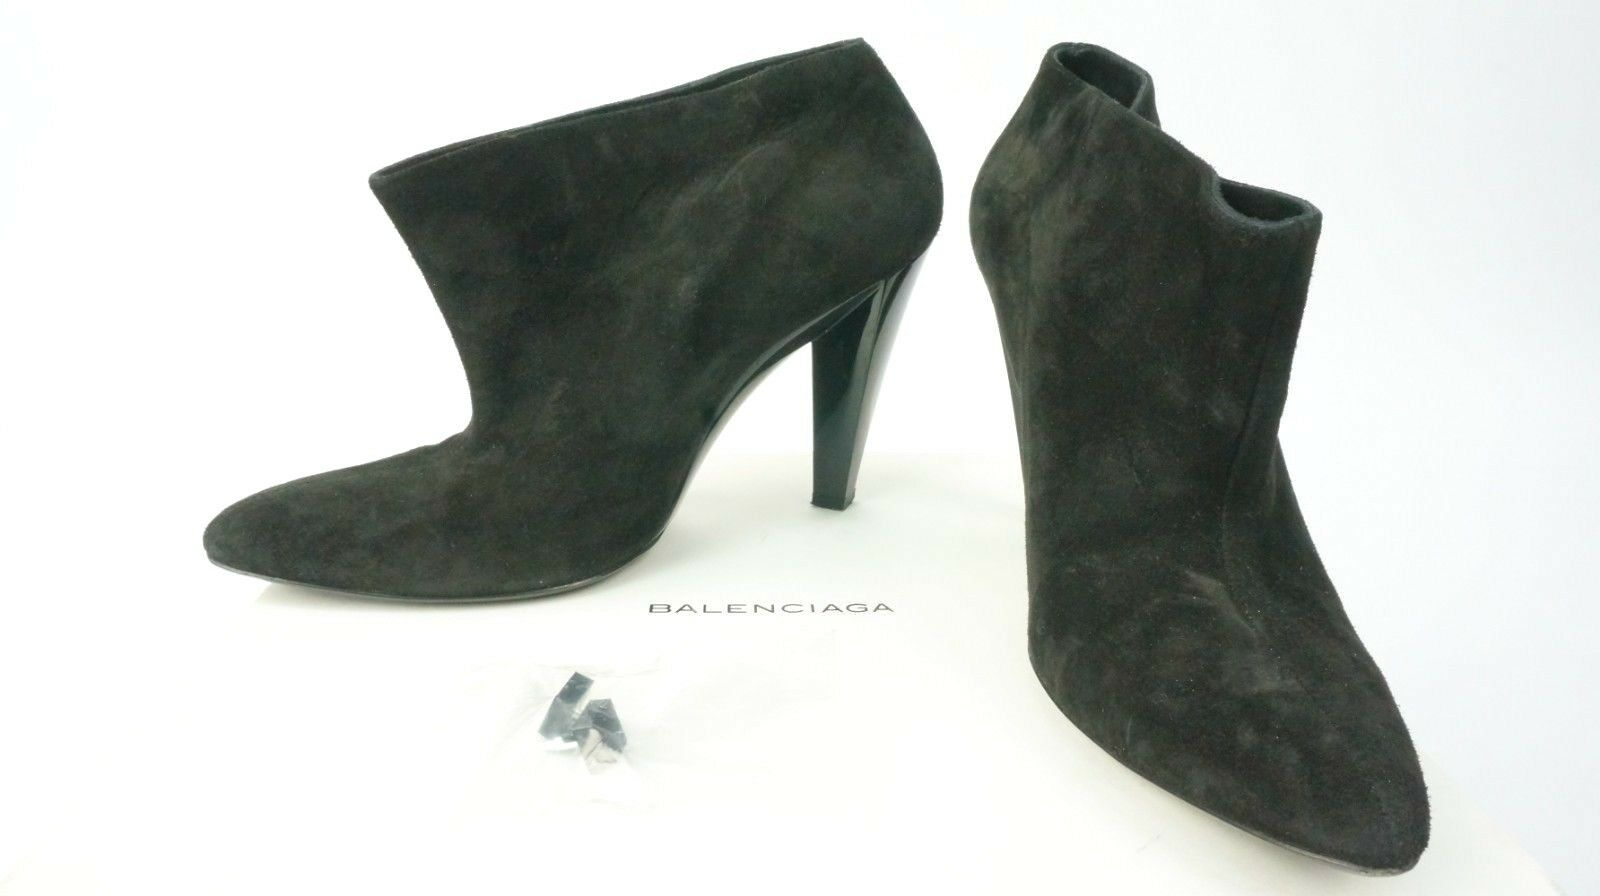 Balenciaga Suede110mm Bootie Boots in Black UK 5.5 EU 38.5